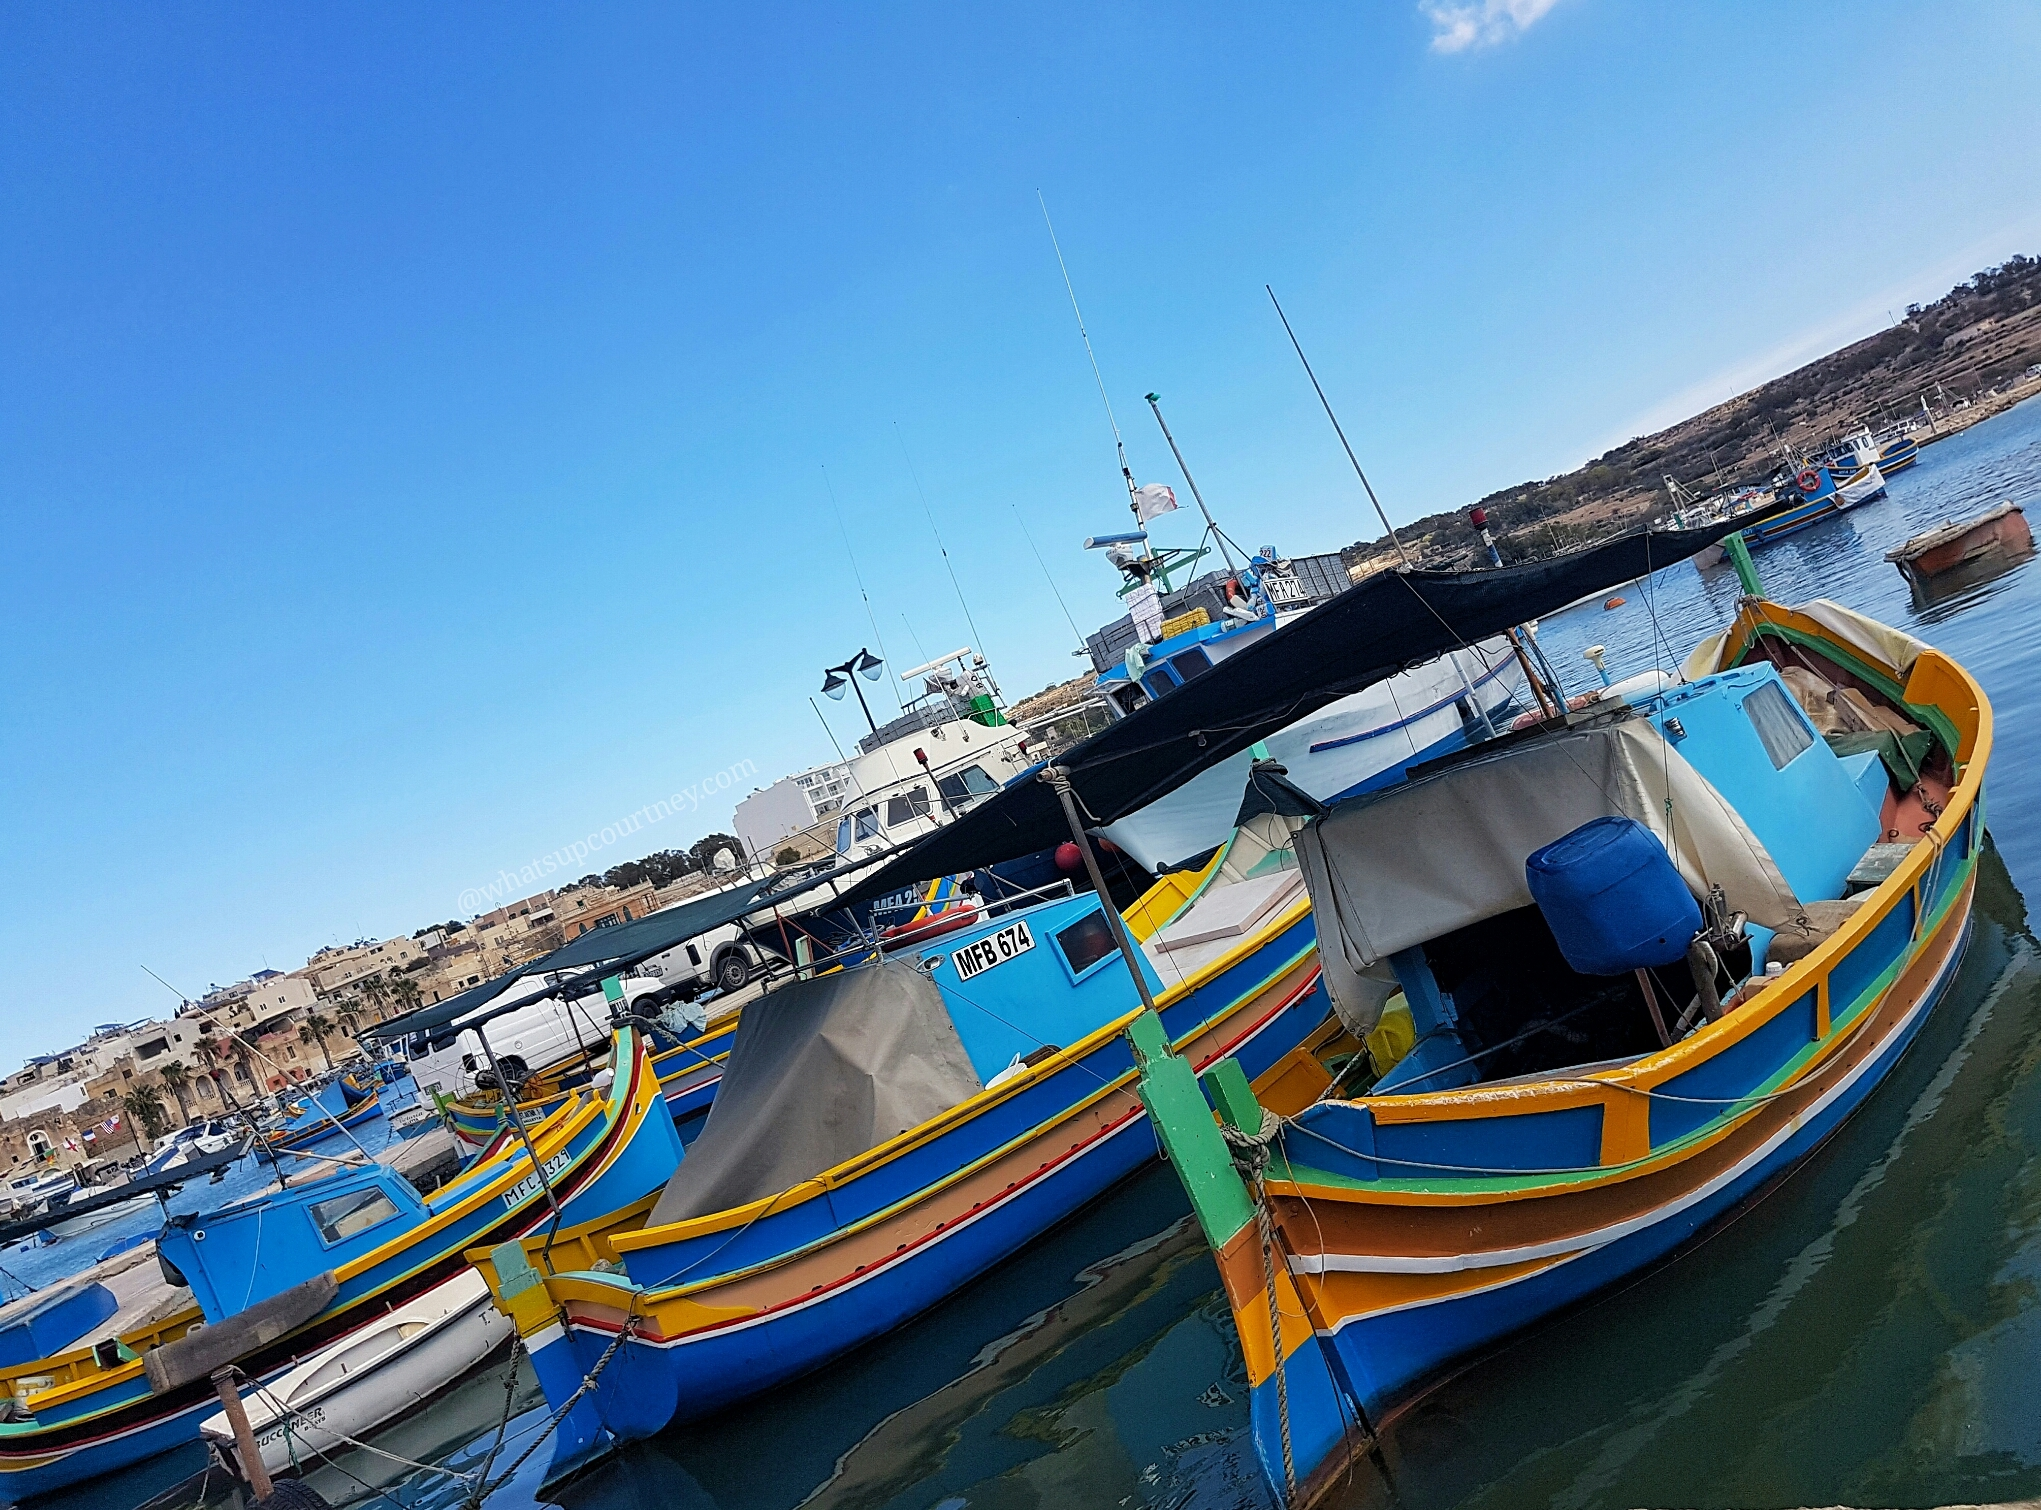 @www.whatsupcourtney.com Malta: Diving into Blue Grotto, Marsaxlokk and Ghar Dalam